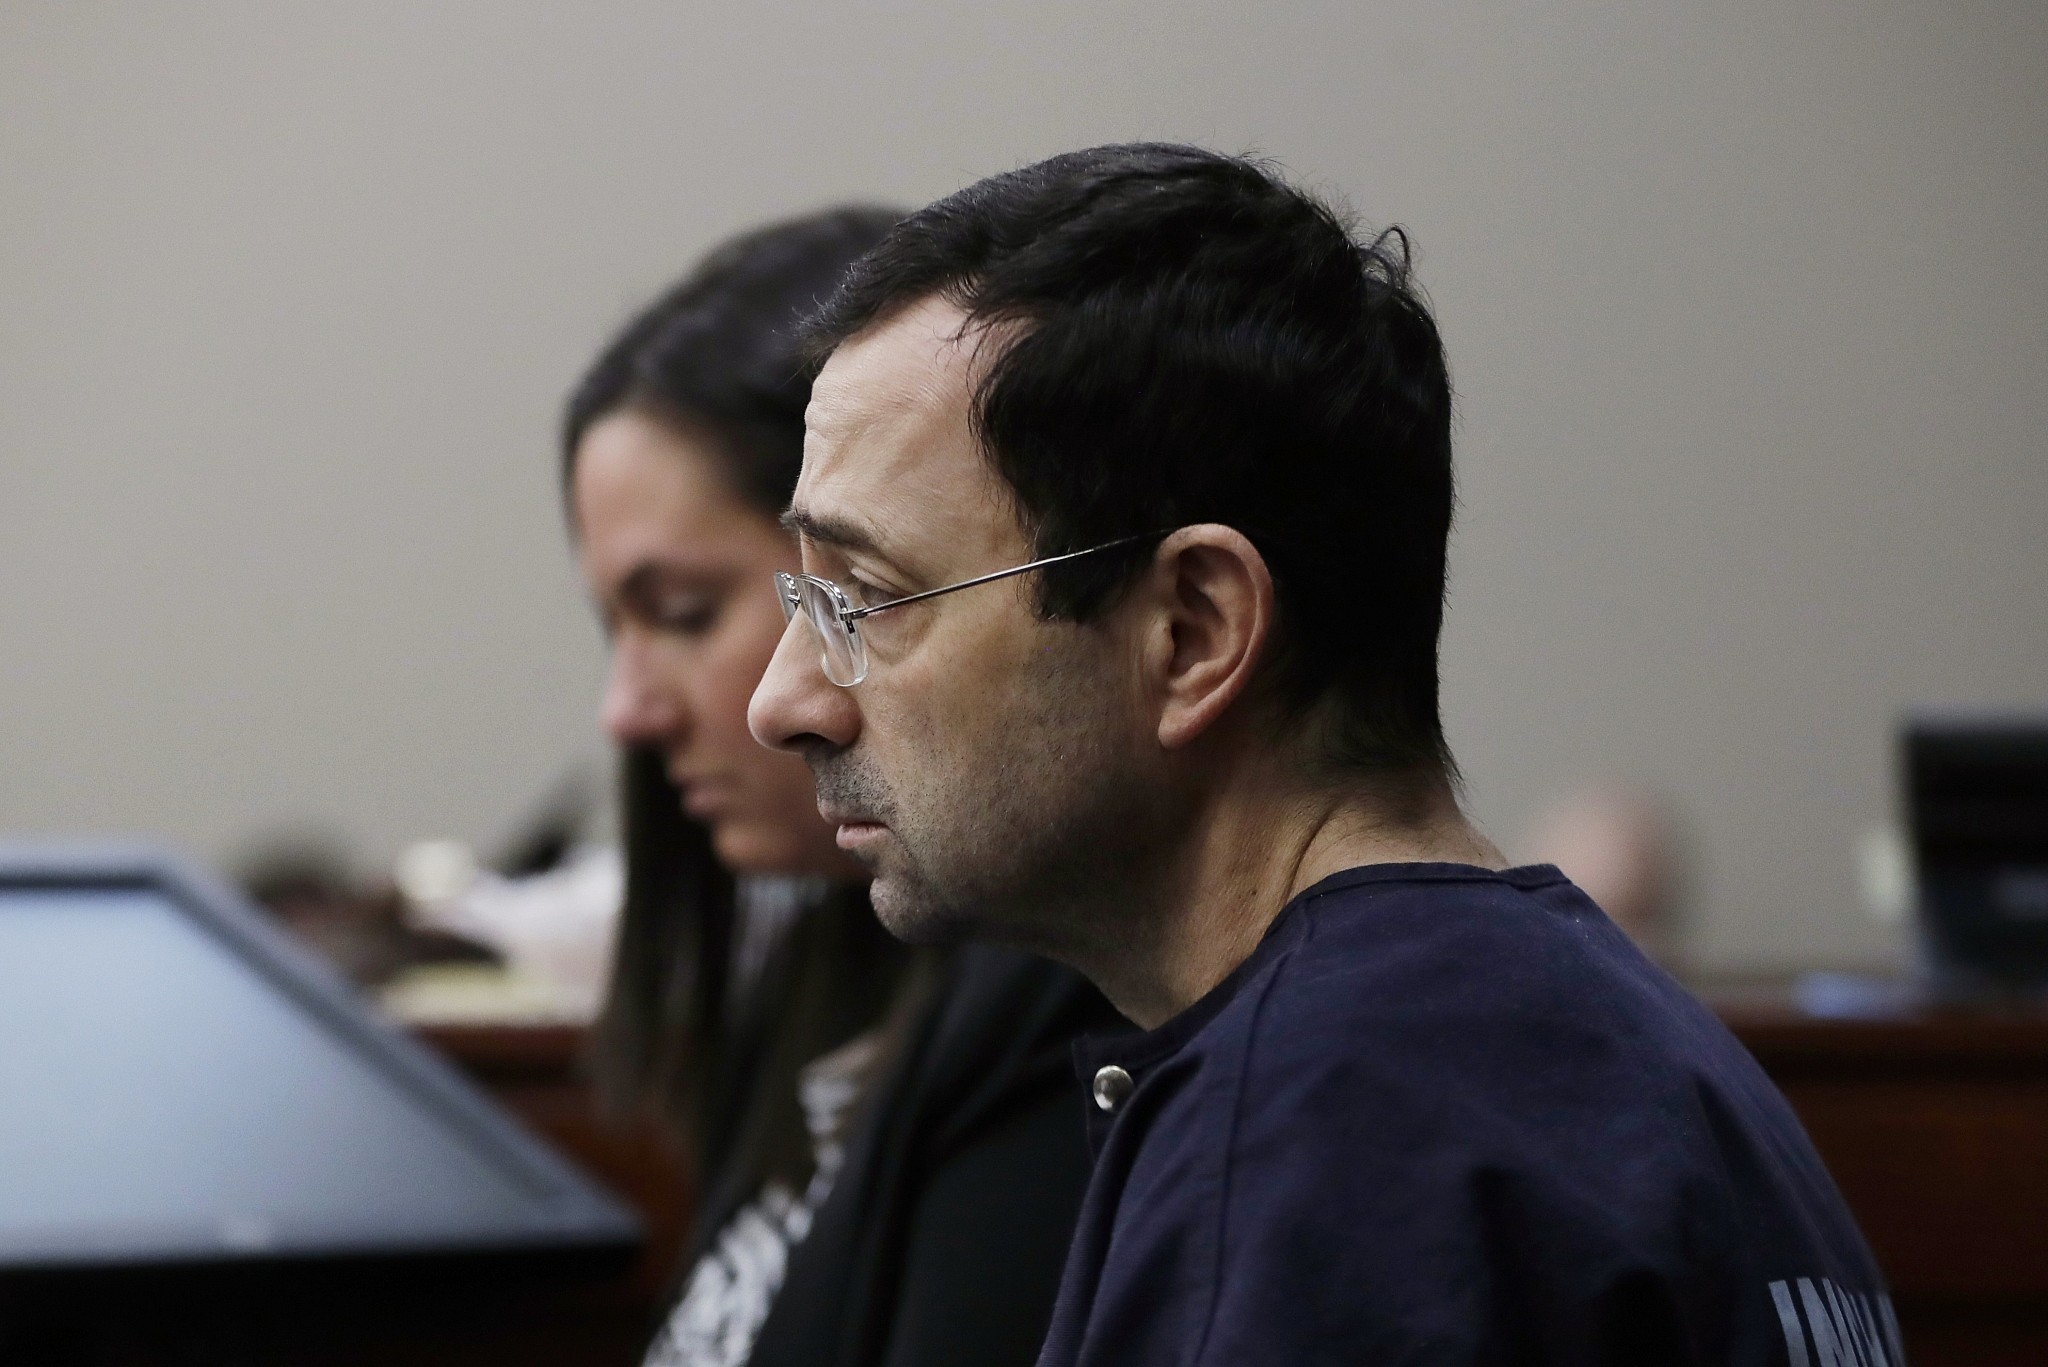 USA Gymnastics facing resignation pressure over abuse scandal